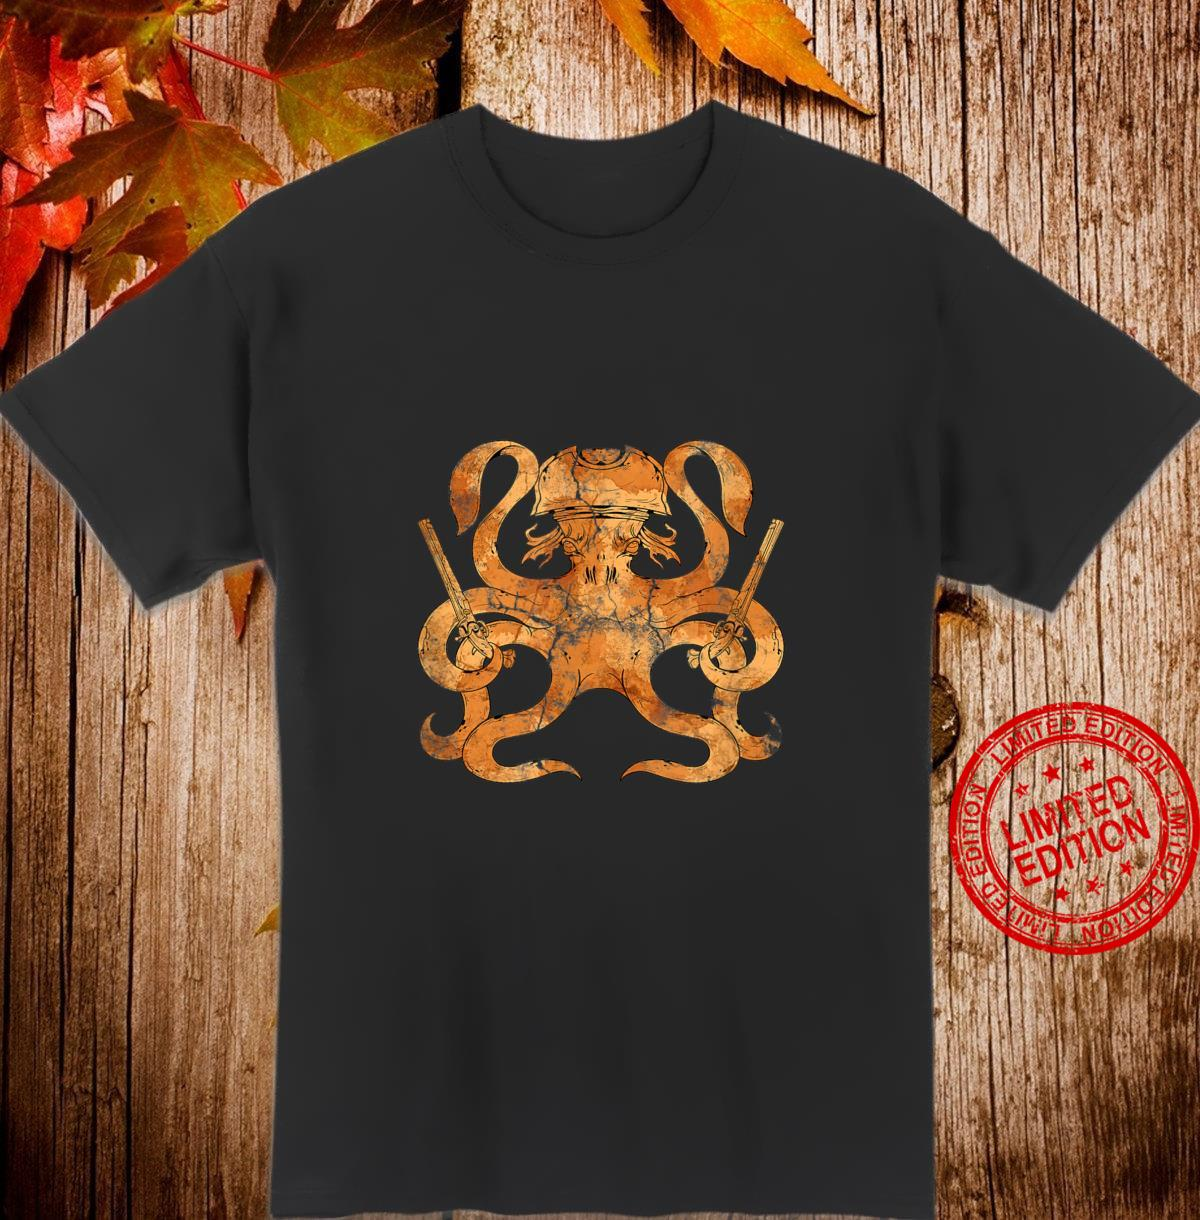 Ocean Predator Pirate Kraken Octopus Shirt